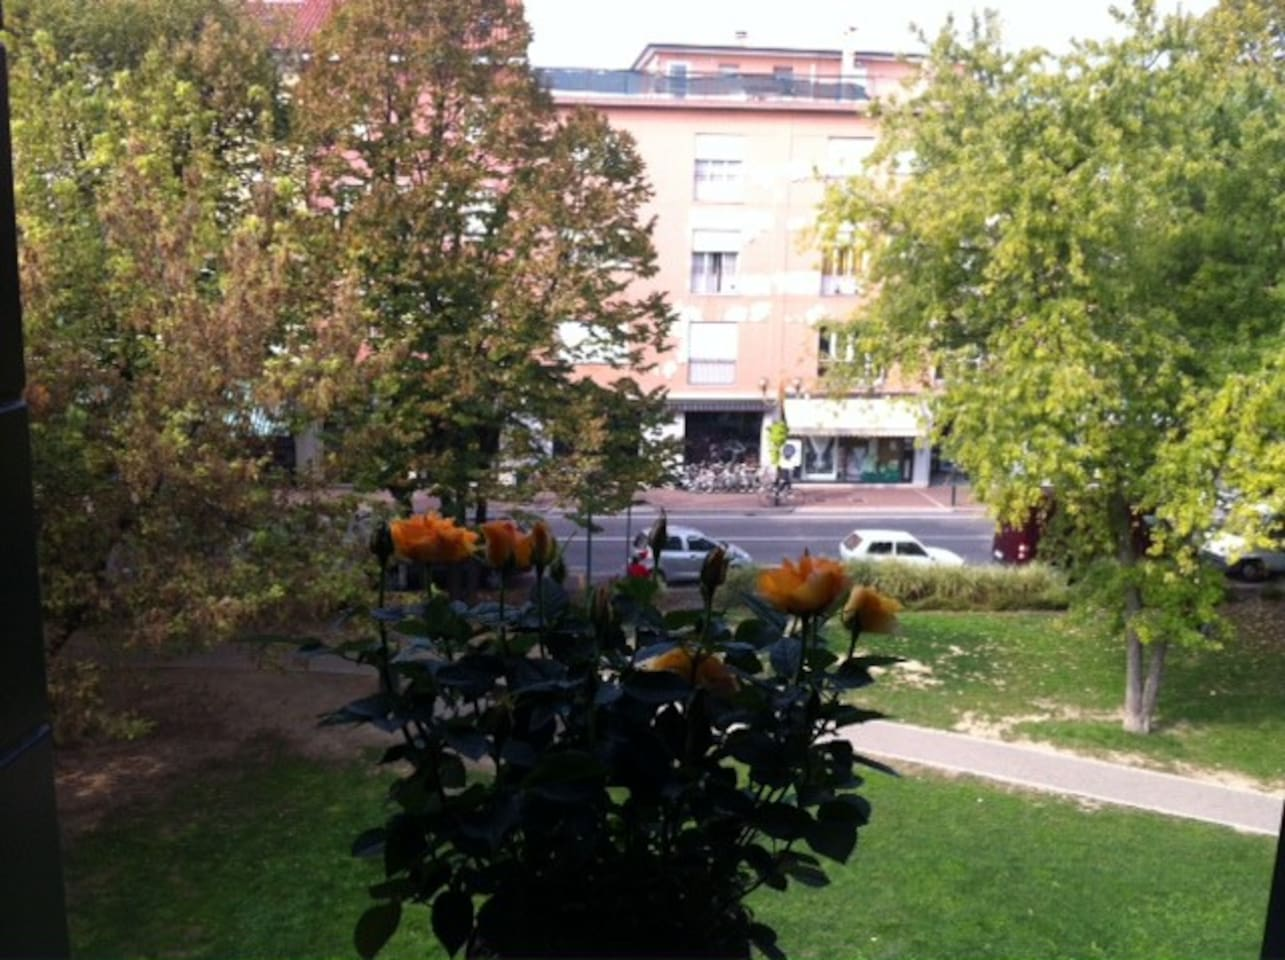 VIEW OF THE PUBBLIC PARK FROM THE KITCHEN WINDOW